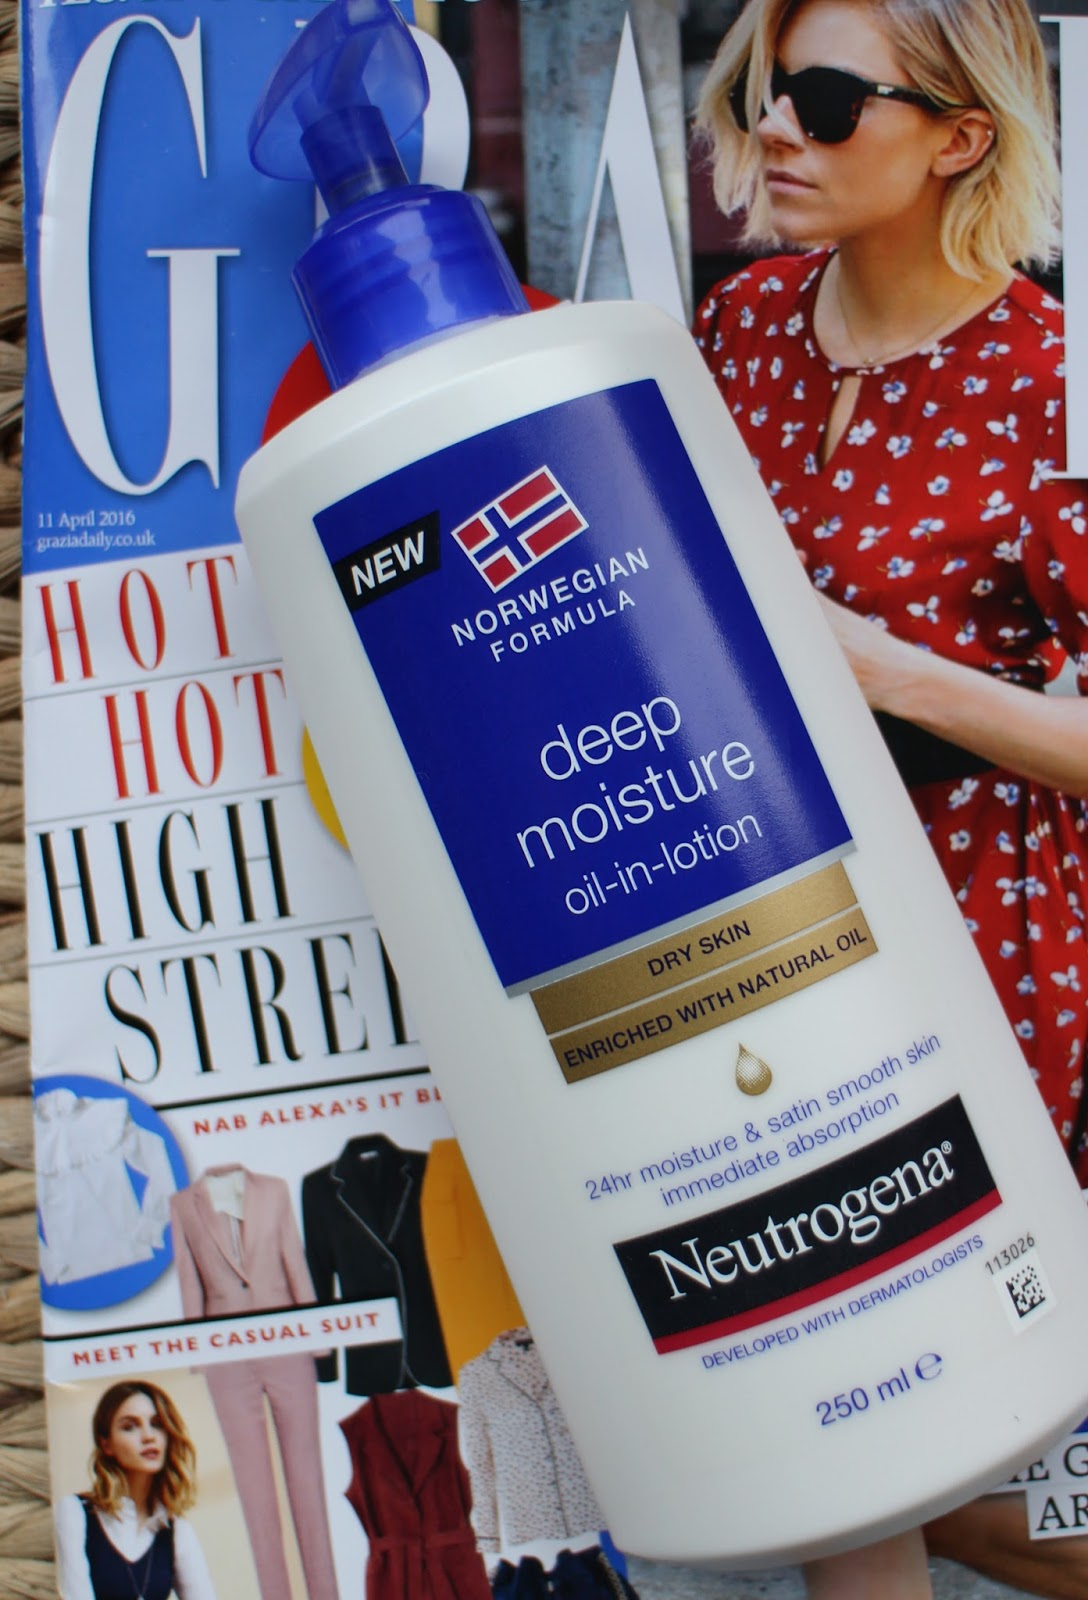 Neutrogena Deep Moisture Oil in Lotion